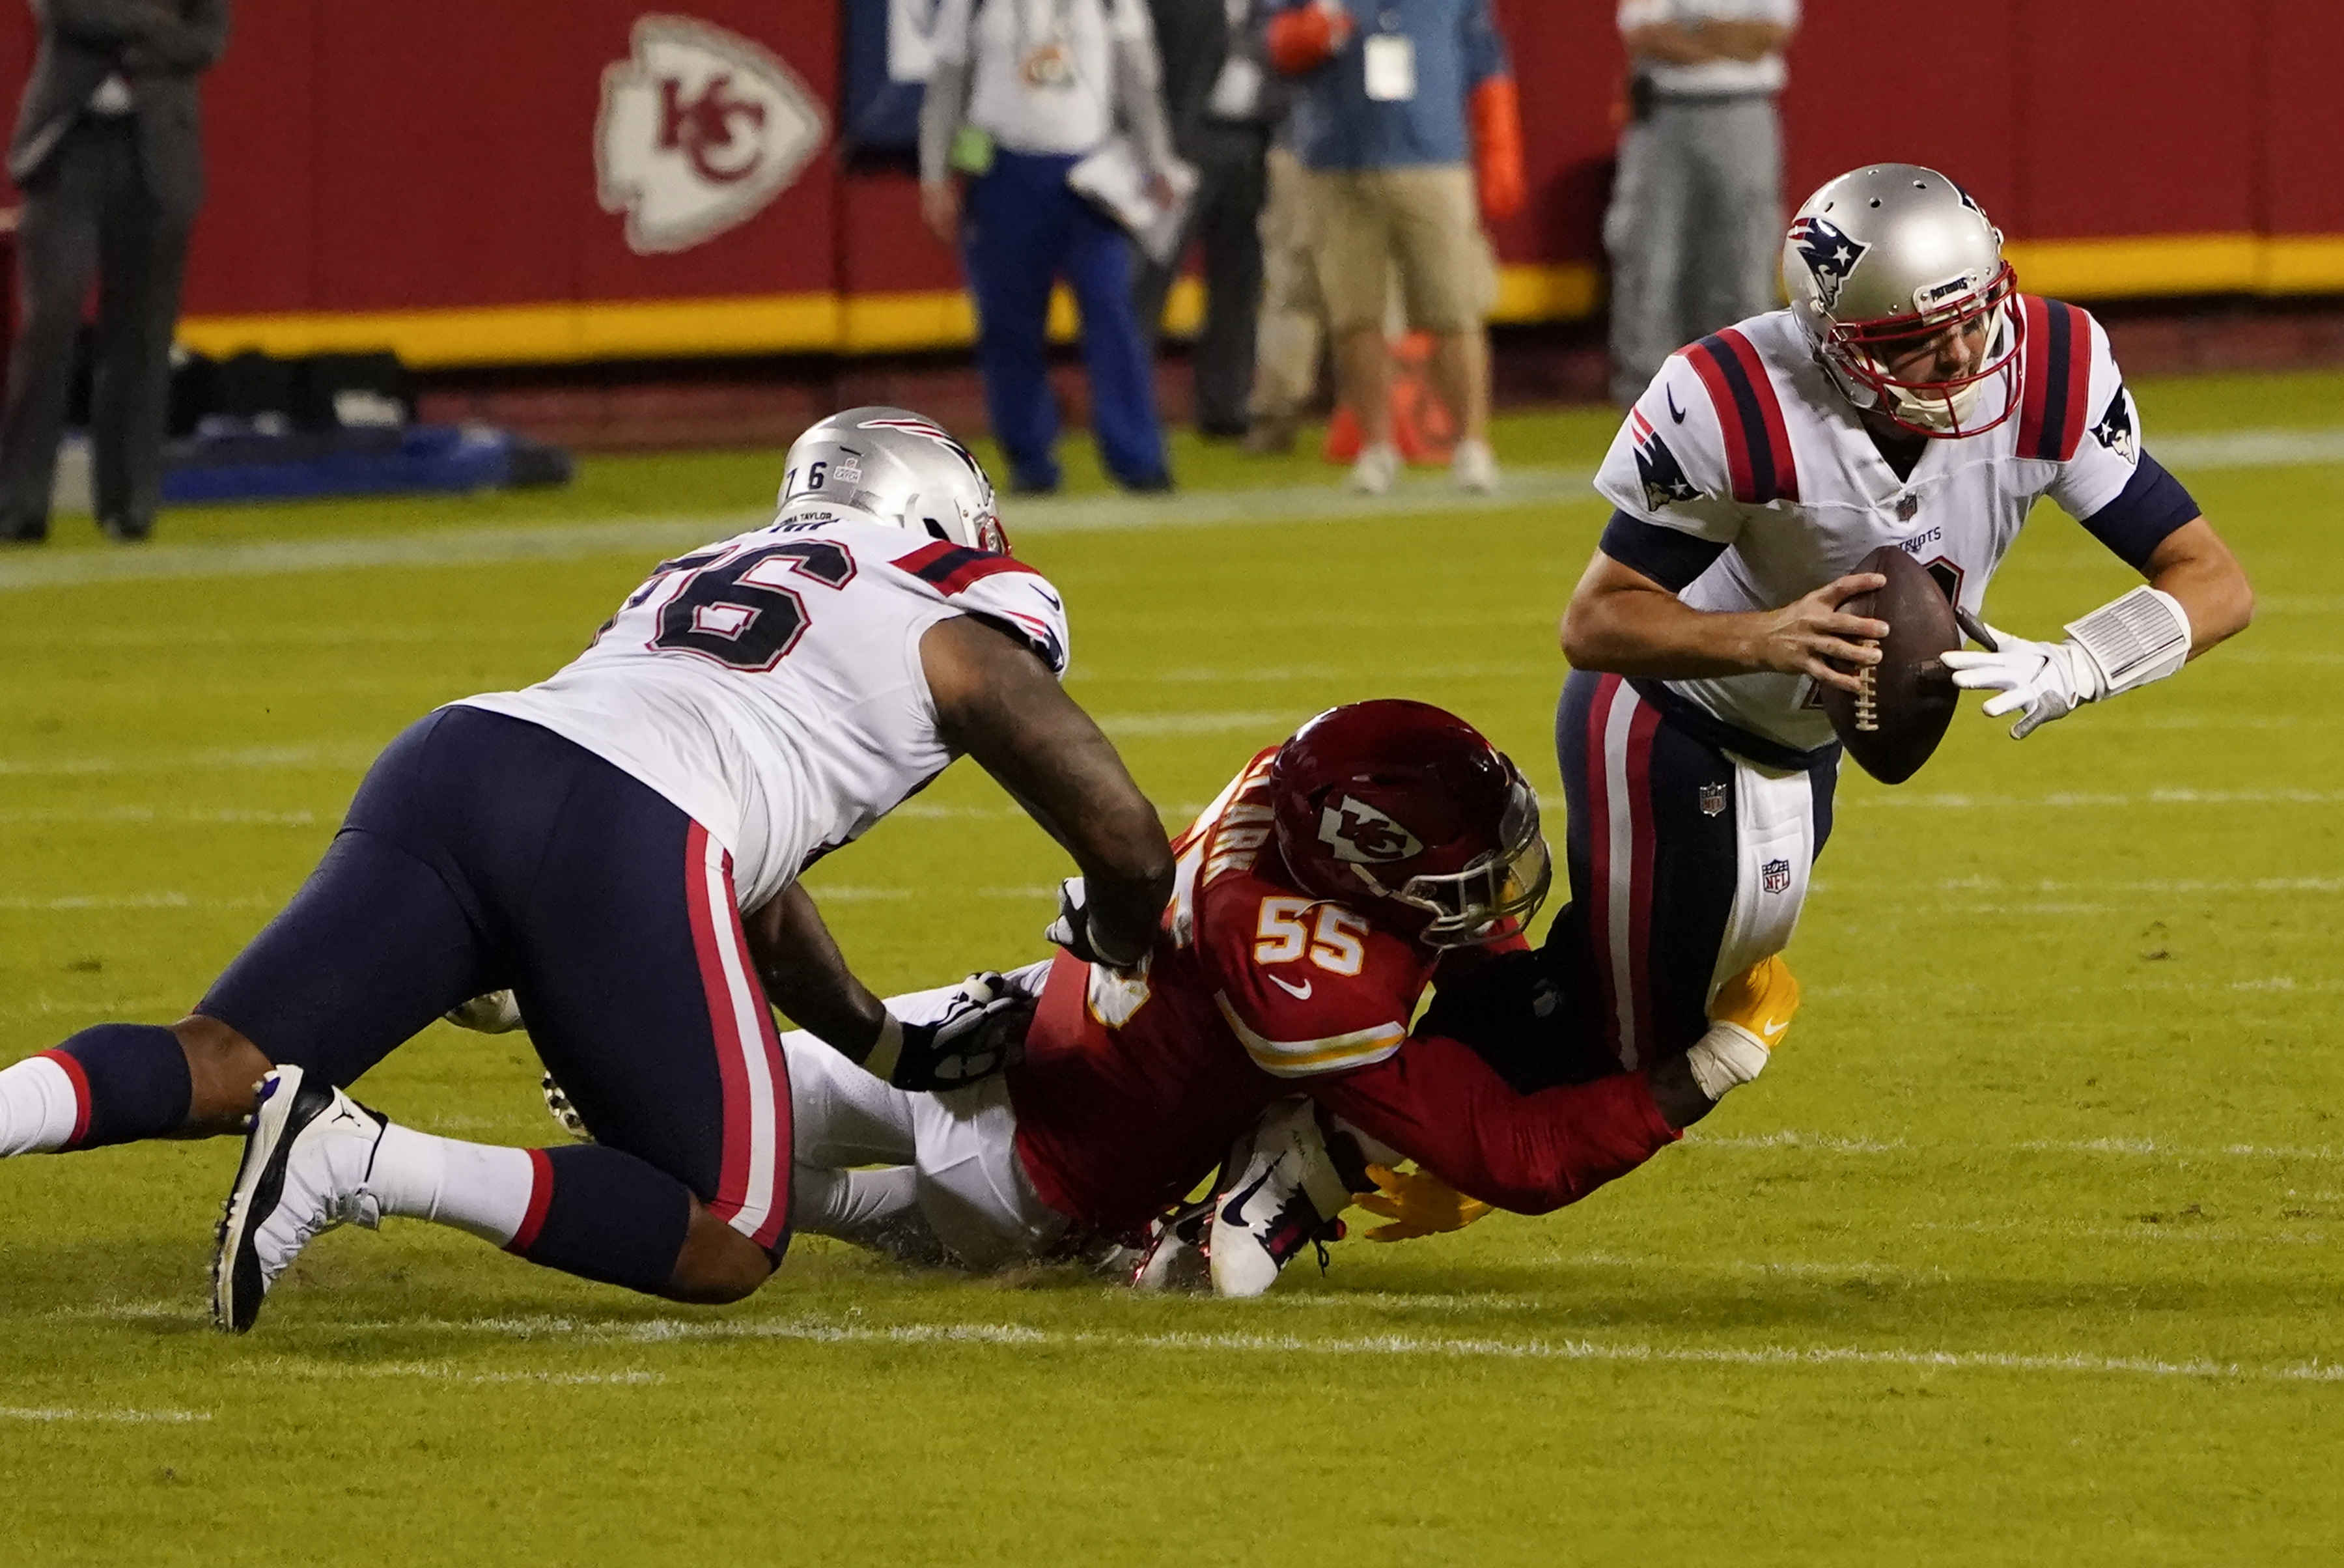 Brian Hoyer took bad sack at end of the half vs. Chiefs, thought he had a timeout when he didn't